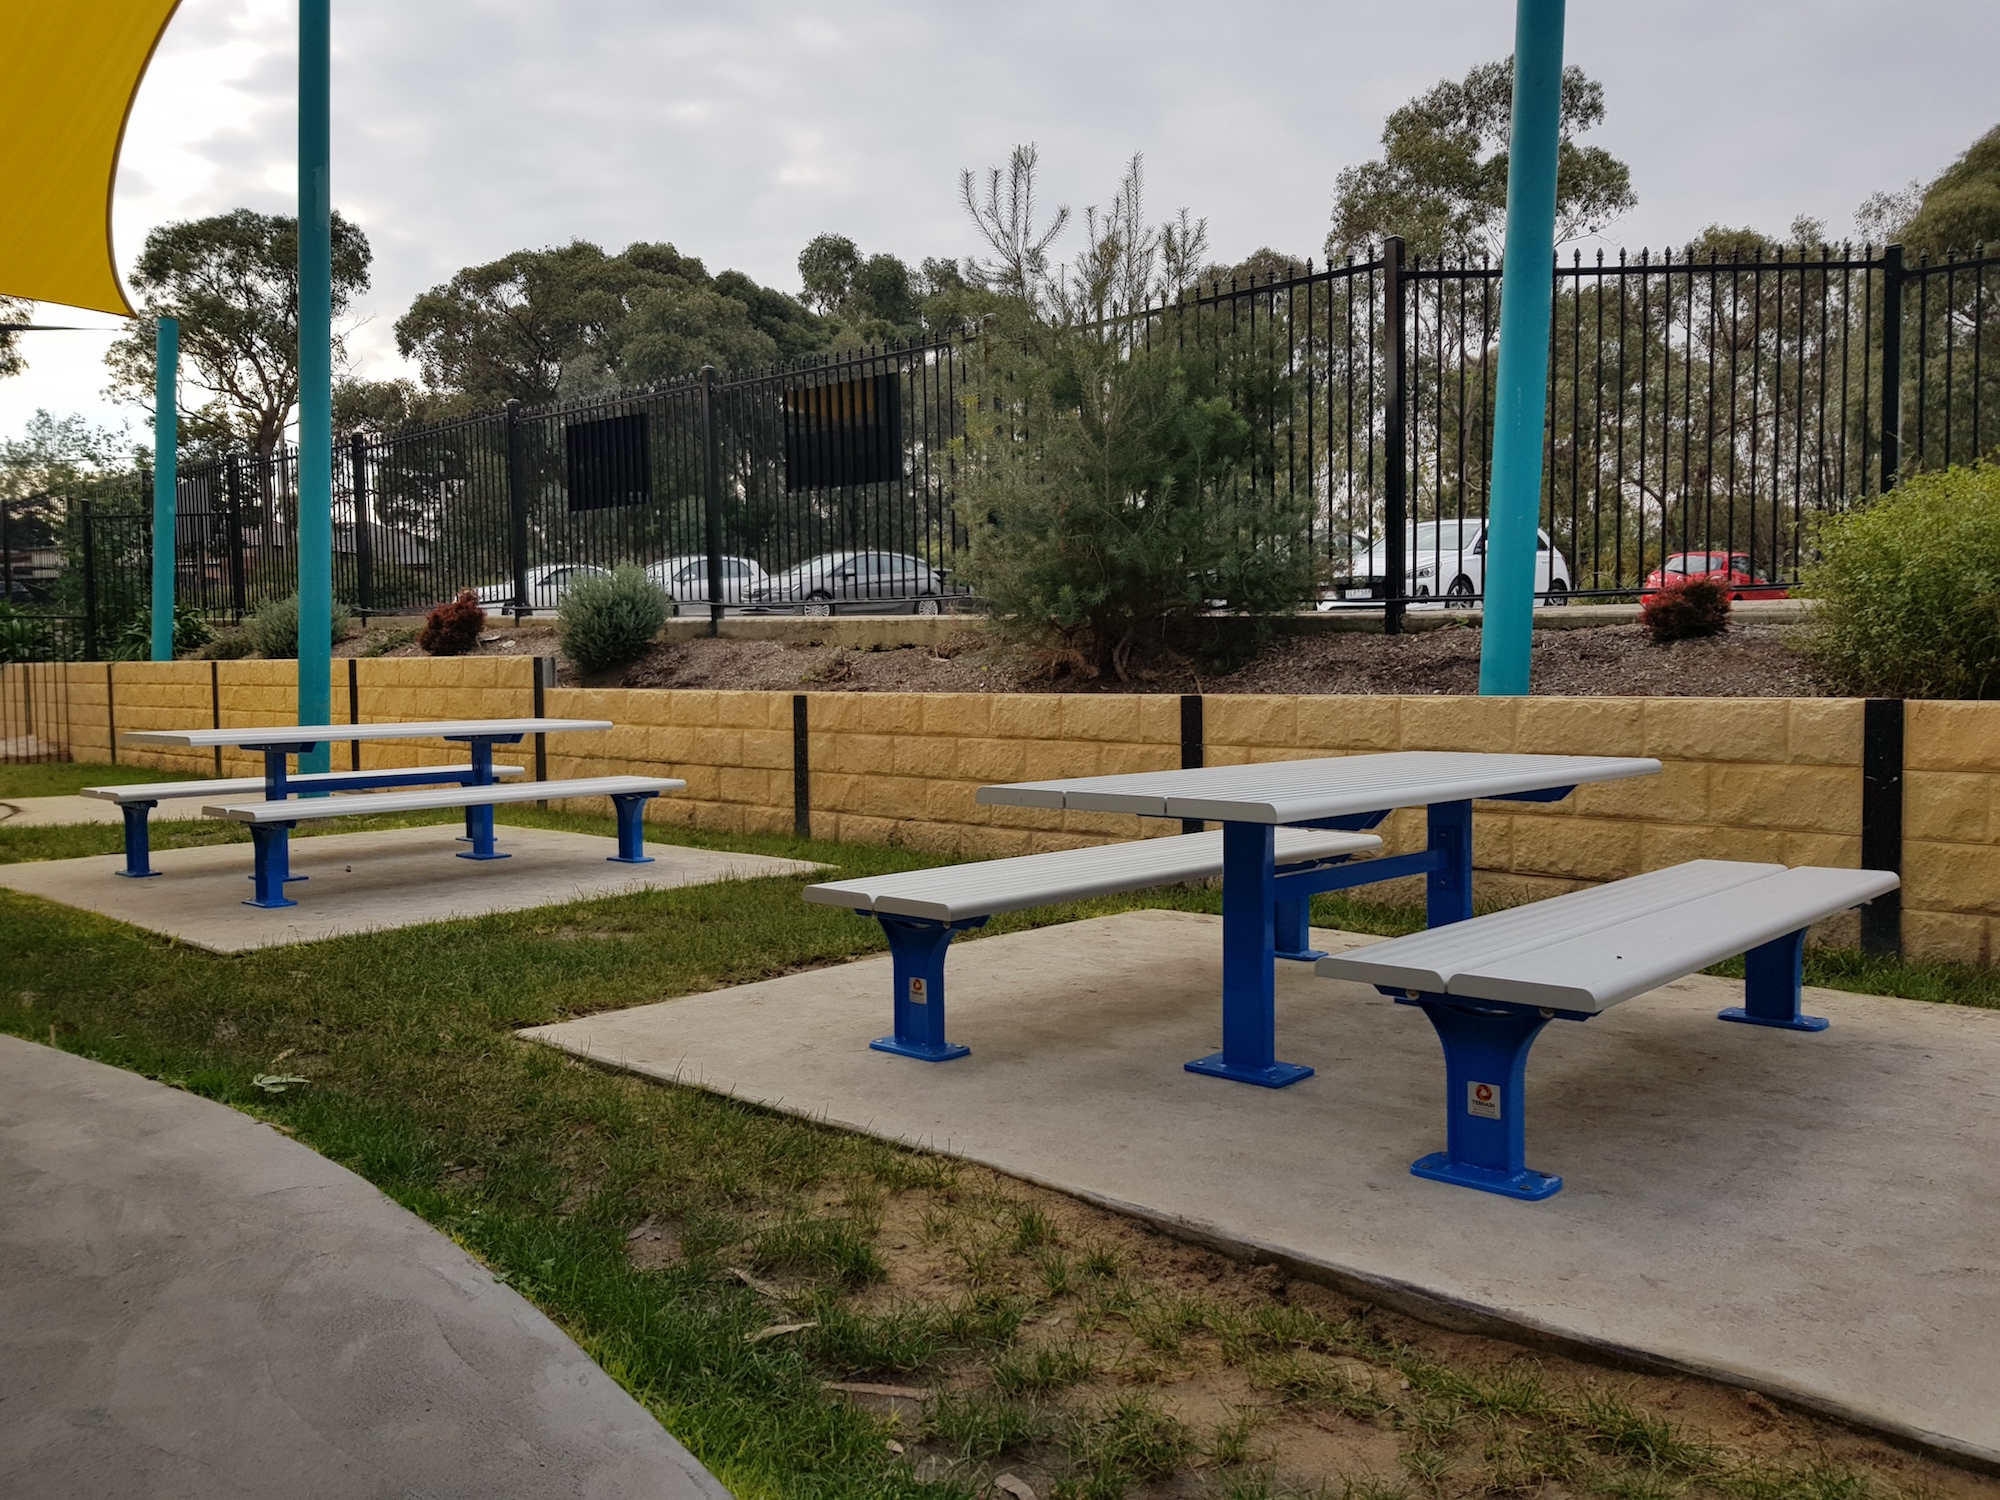 Just east of blackburn in melbourne contacted terrain group requesting a number of table settings for the outdoor areas of the school